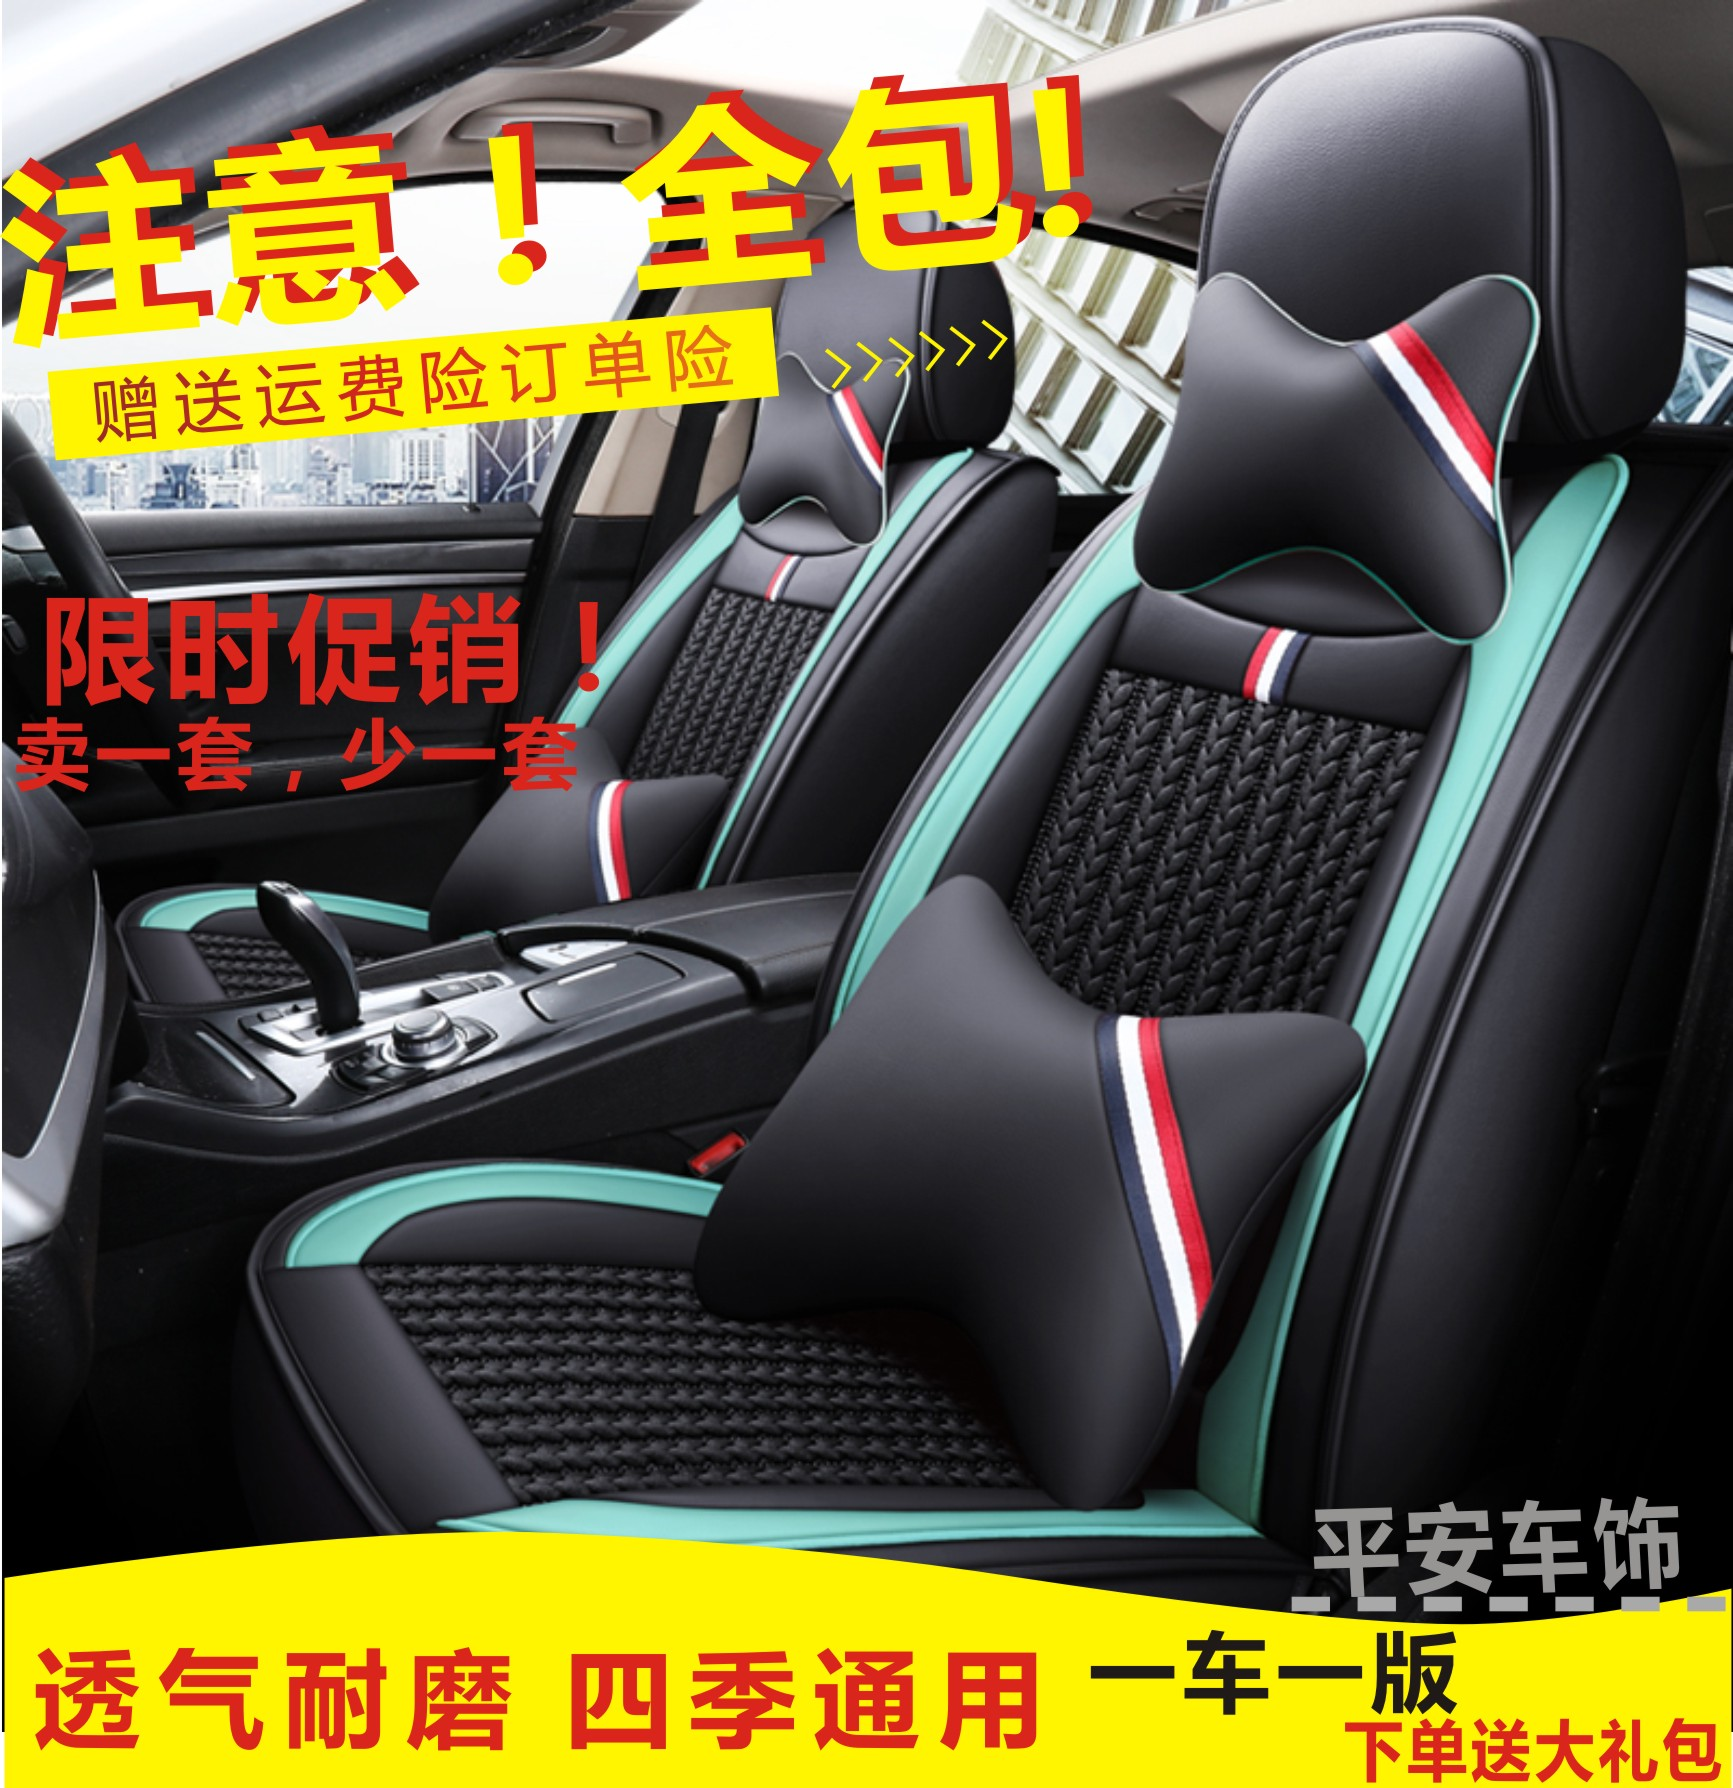 Four seasons ice cushion Langyi Suteng old Passat B5 driving field 1.8T Bora special car seat cover